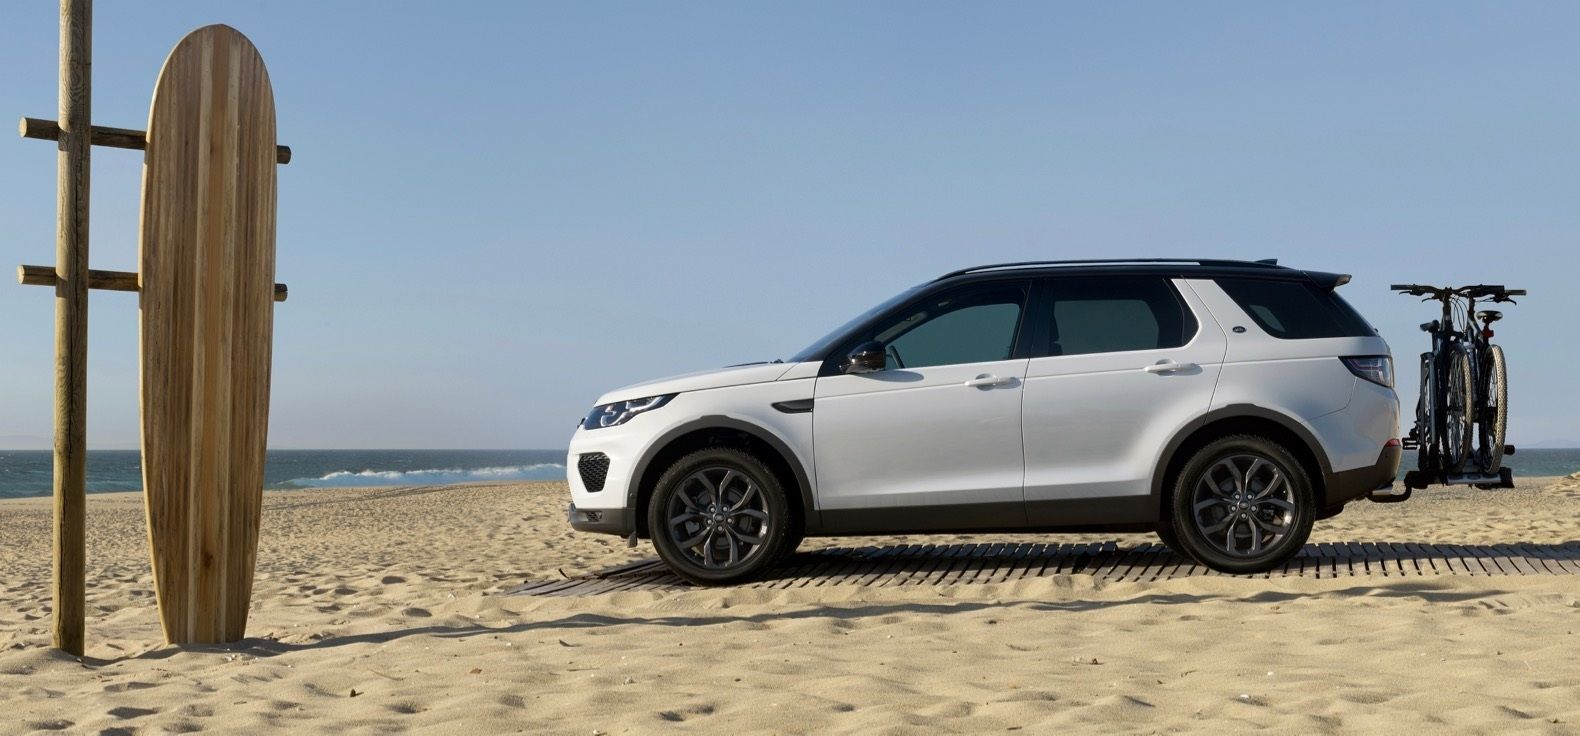 2019 Land Rover Discovery Sport Overview And Price Land Rover Discovery Land Rover Land Rover Discovery Sport